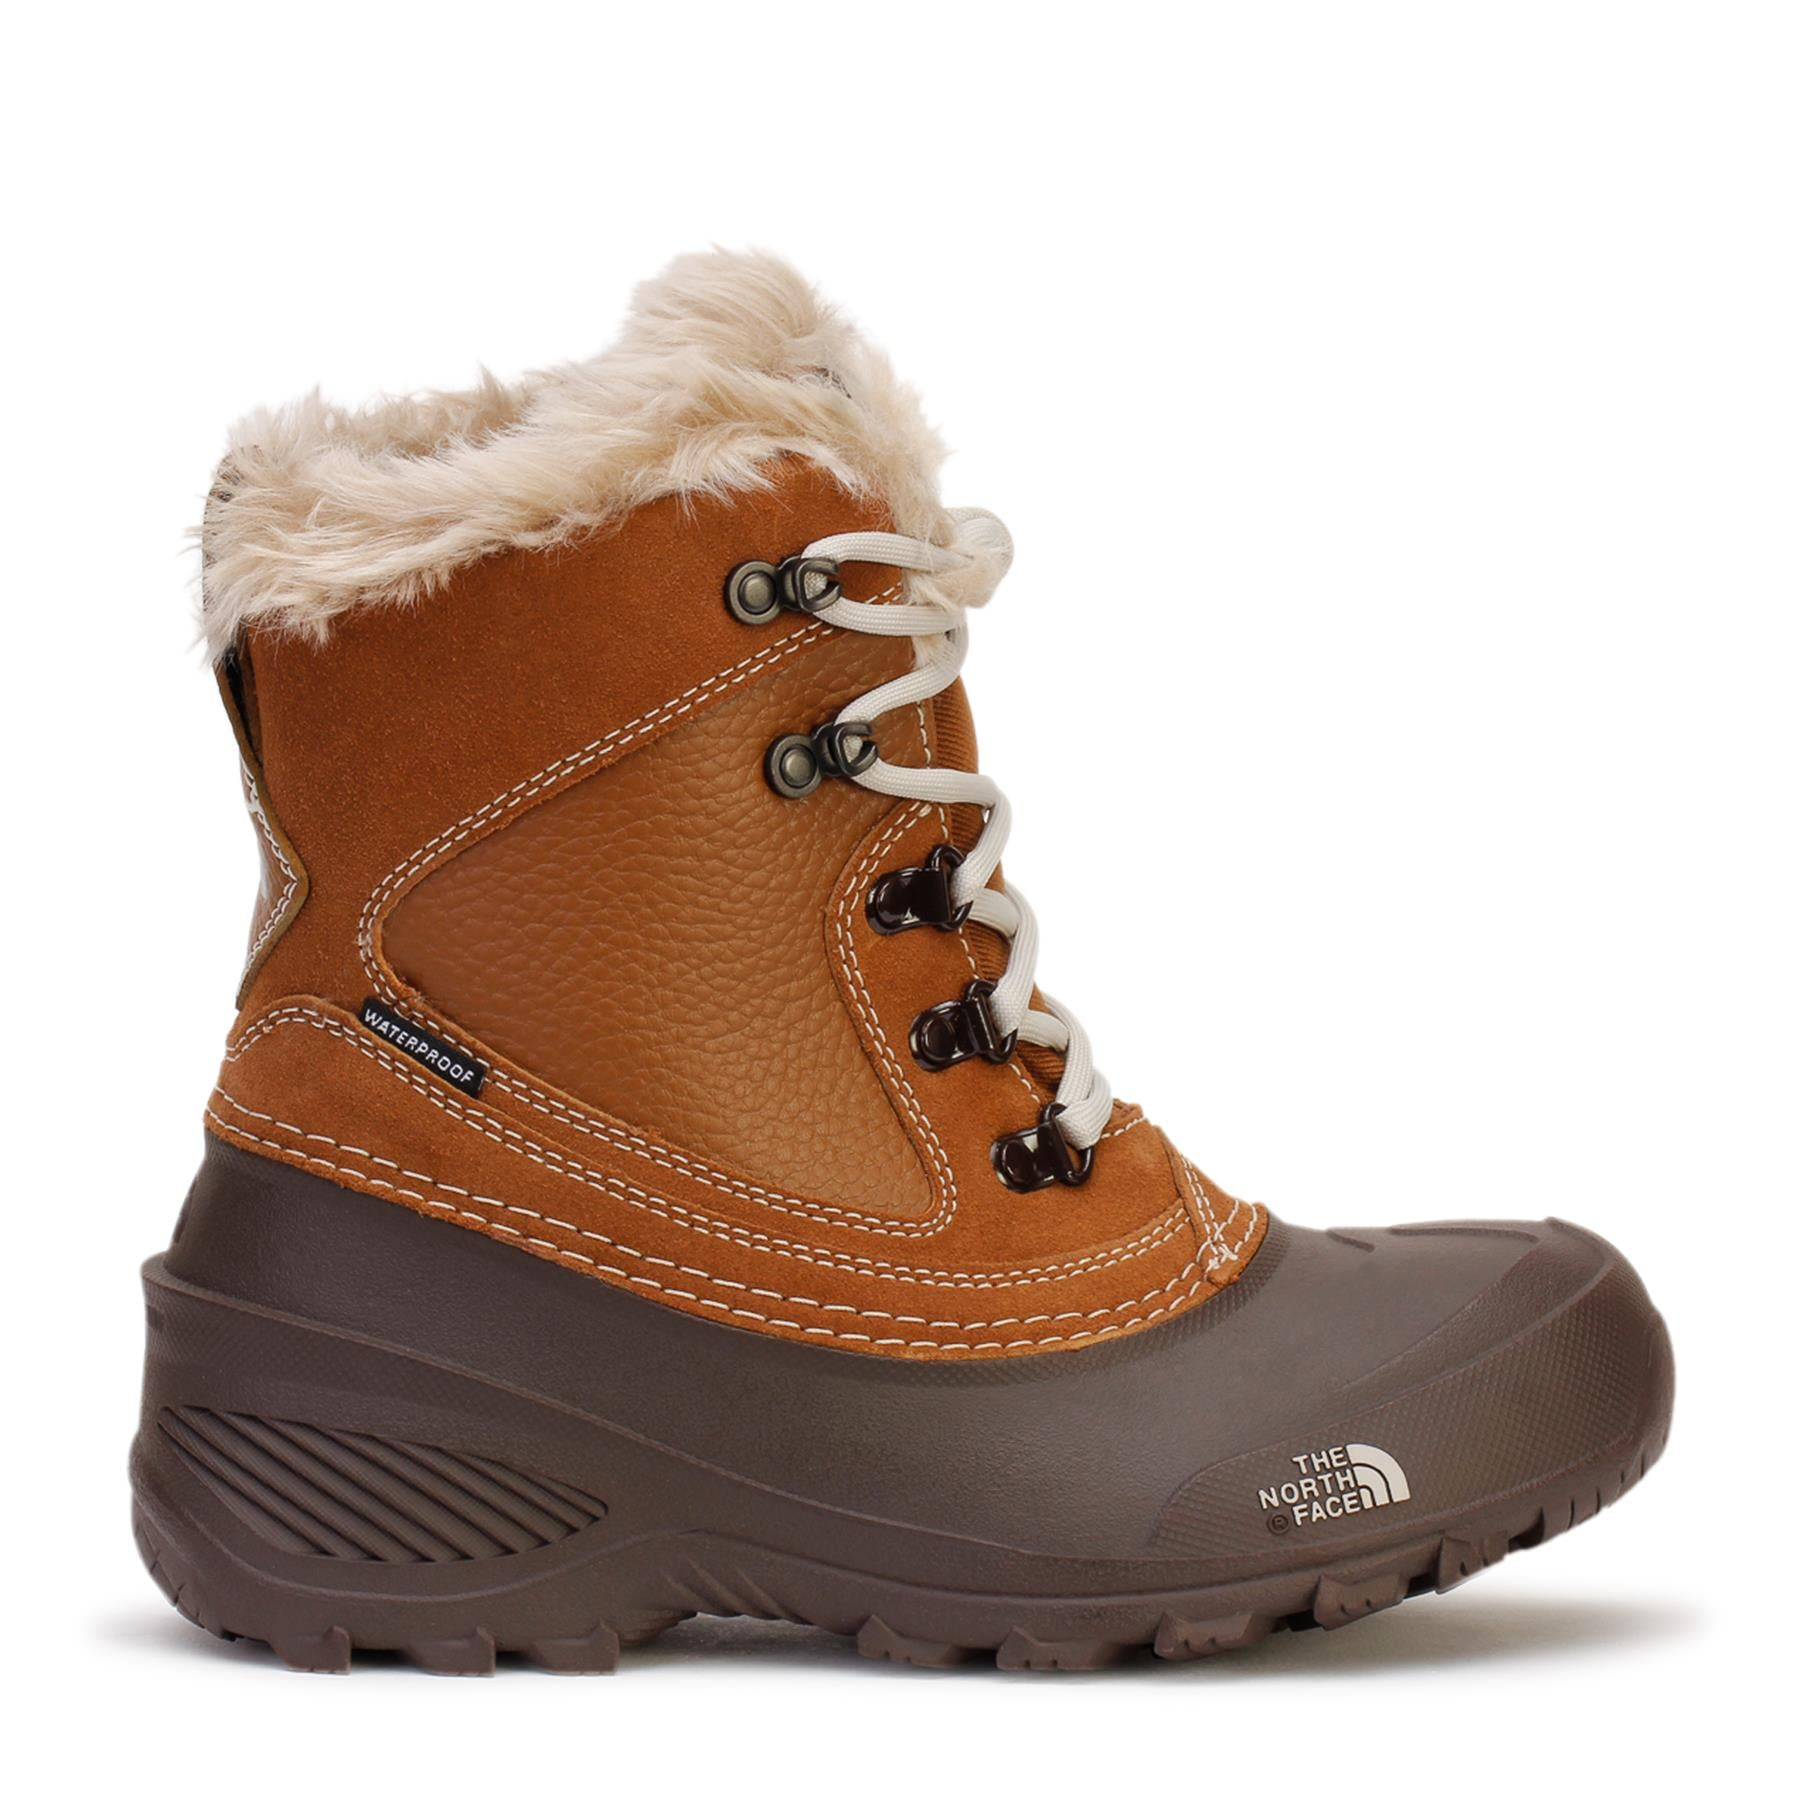 the-north-face-kids-shellista-extreme-winter-boots-daschshund-brown-moonlight-ivory-main